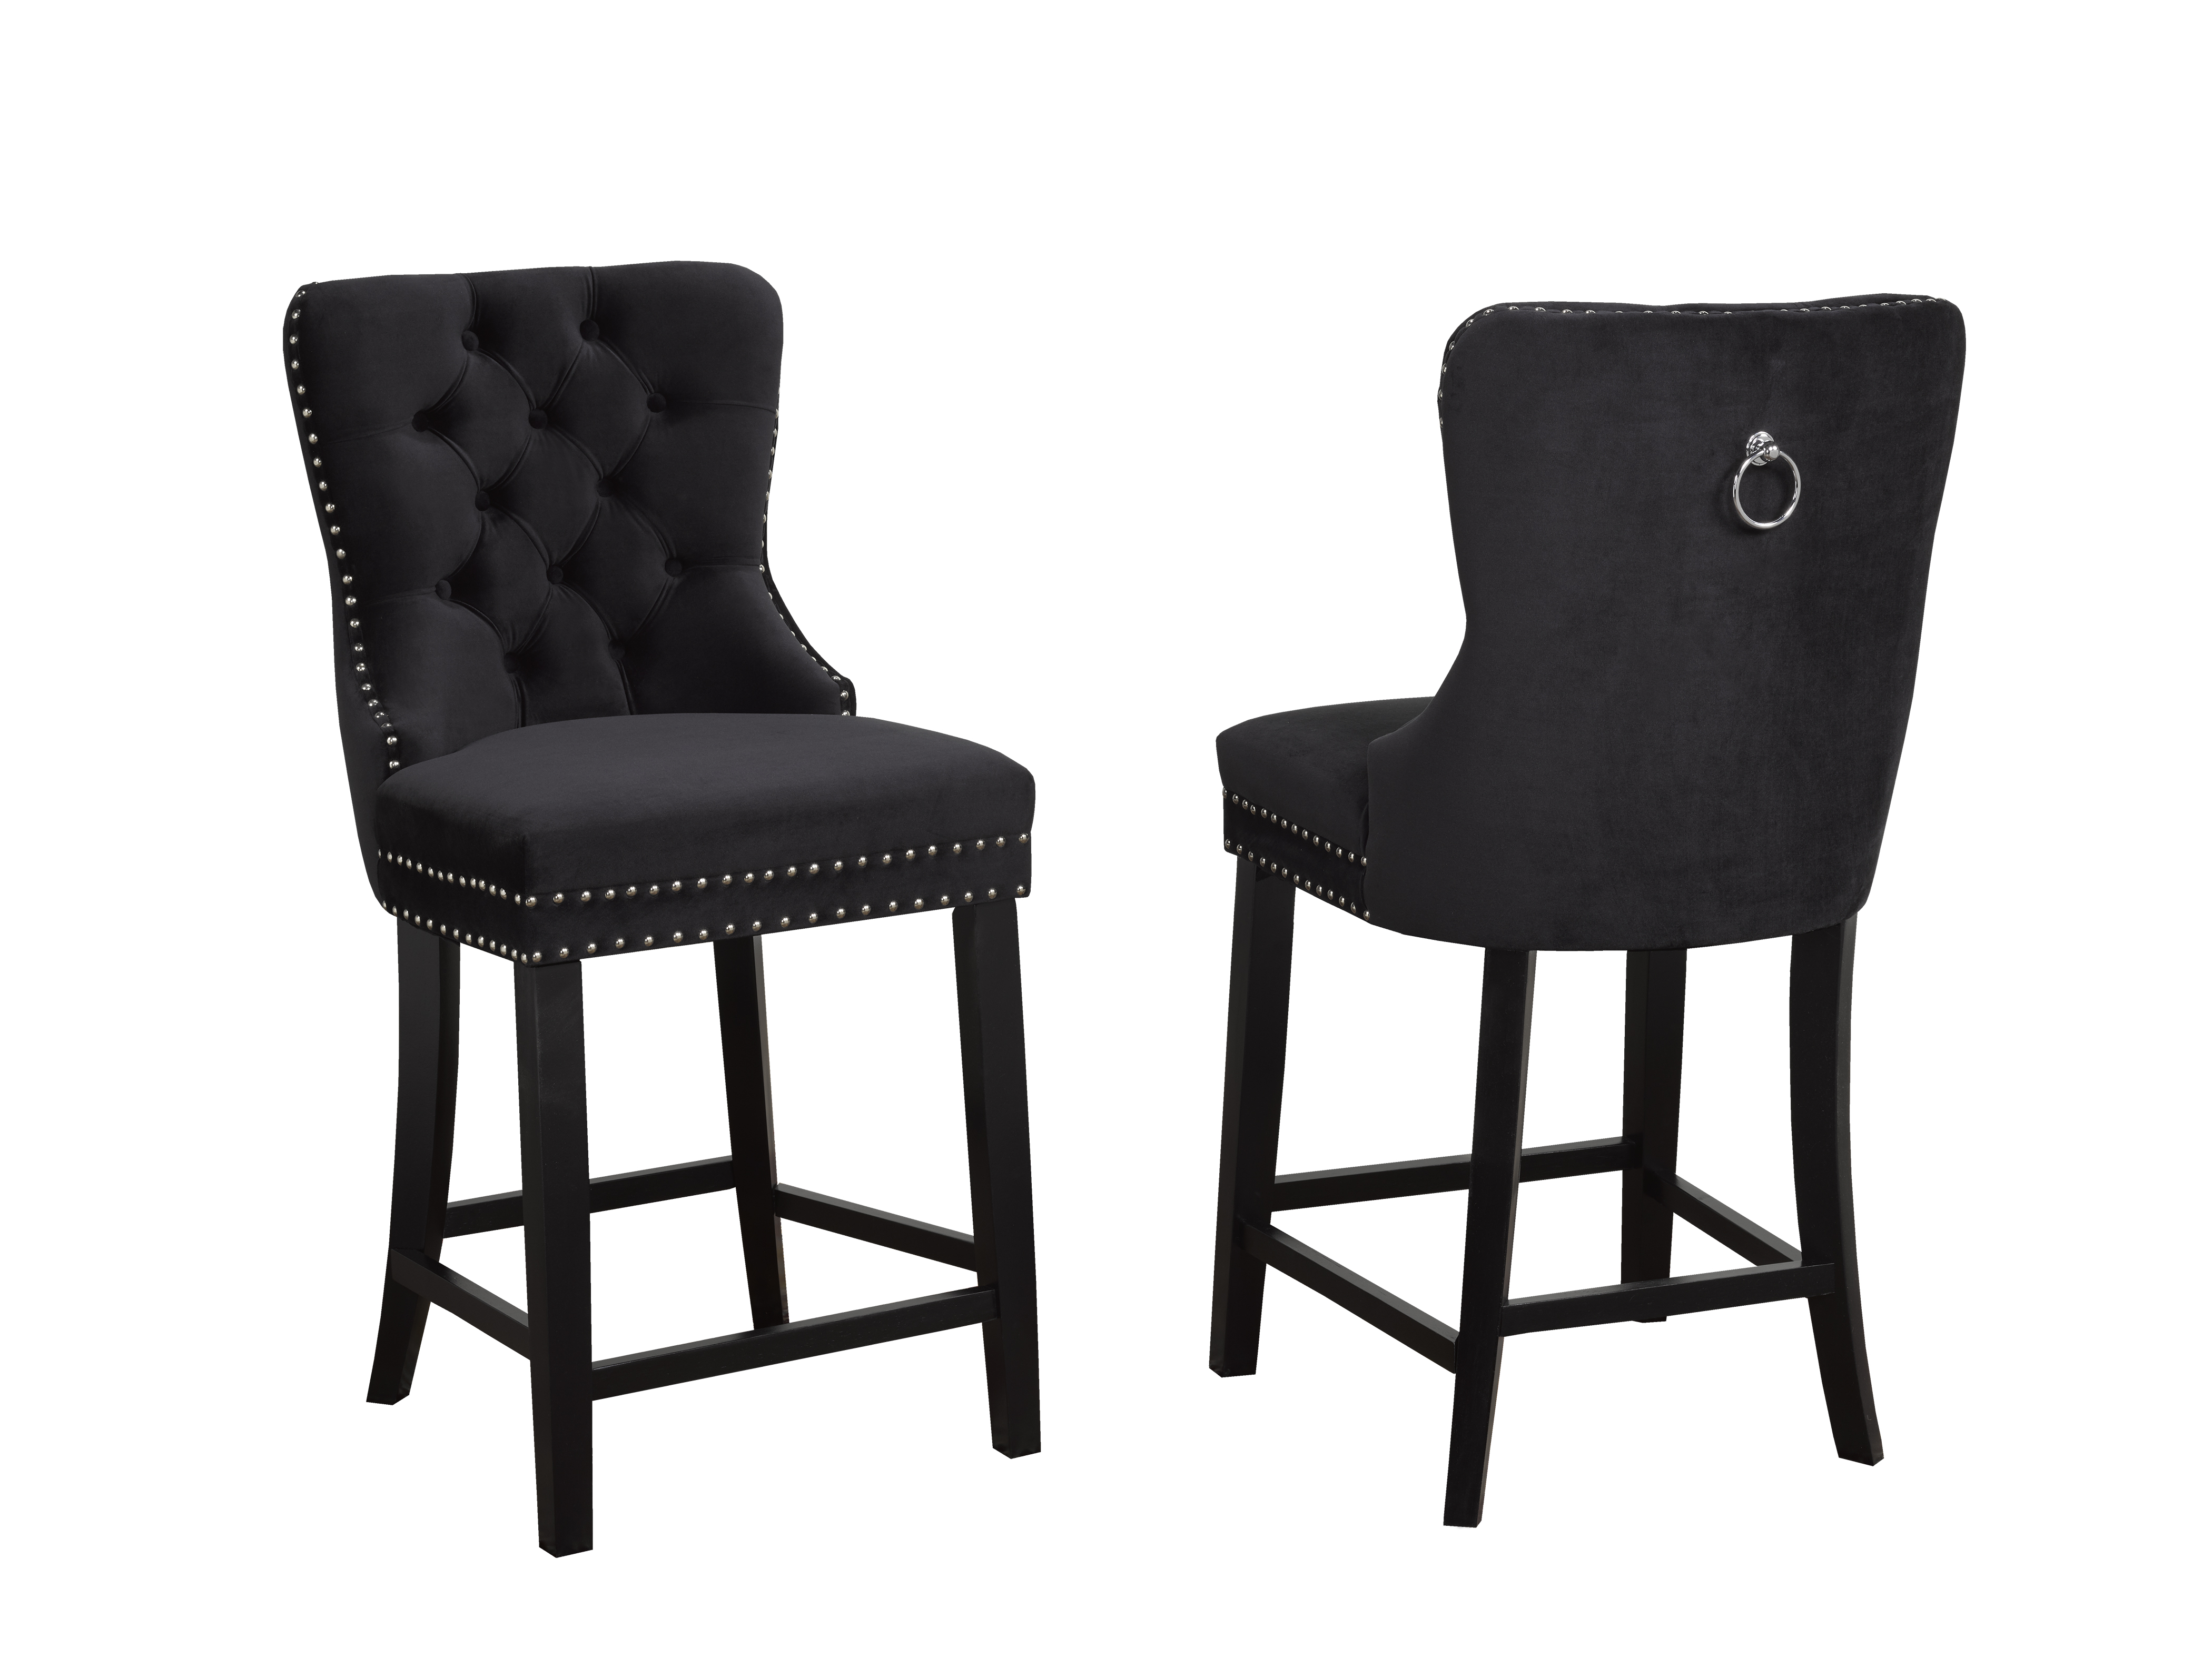 BARSTOOL BLACK FABRIC (SET OF 2)